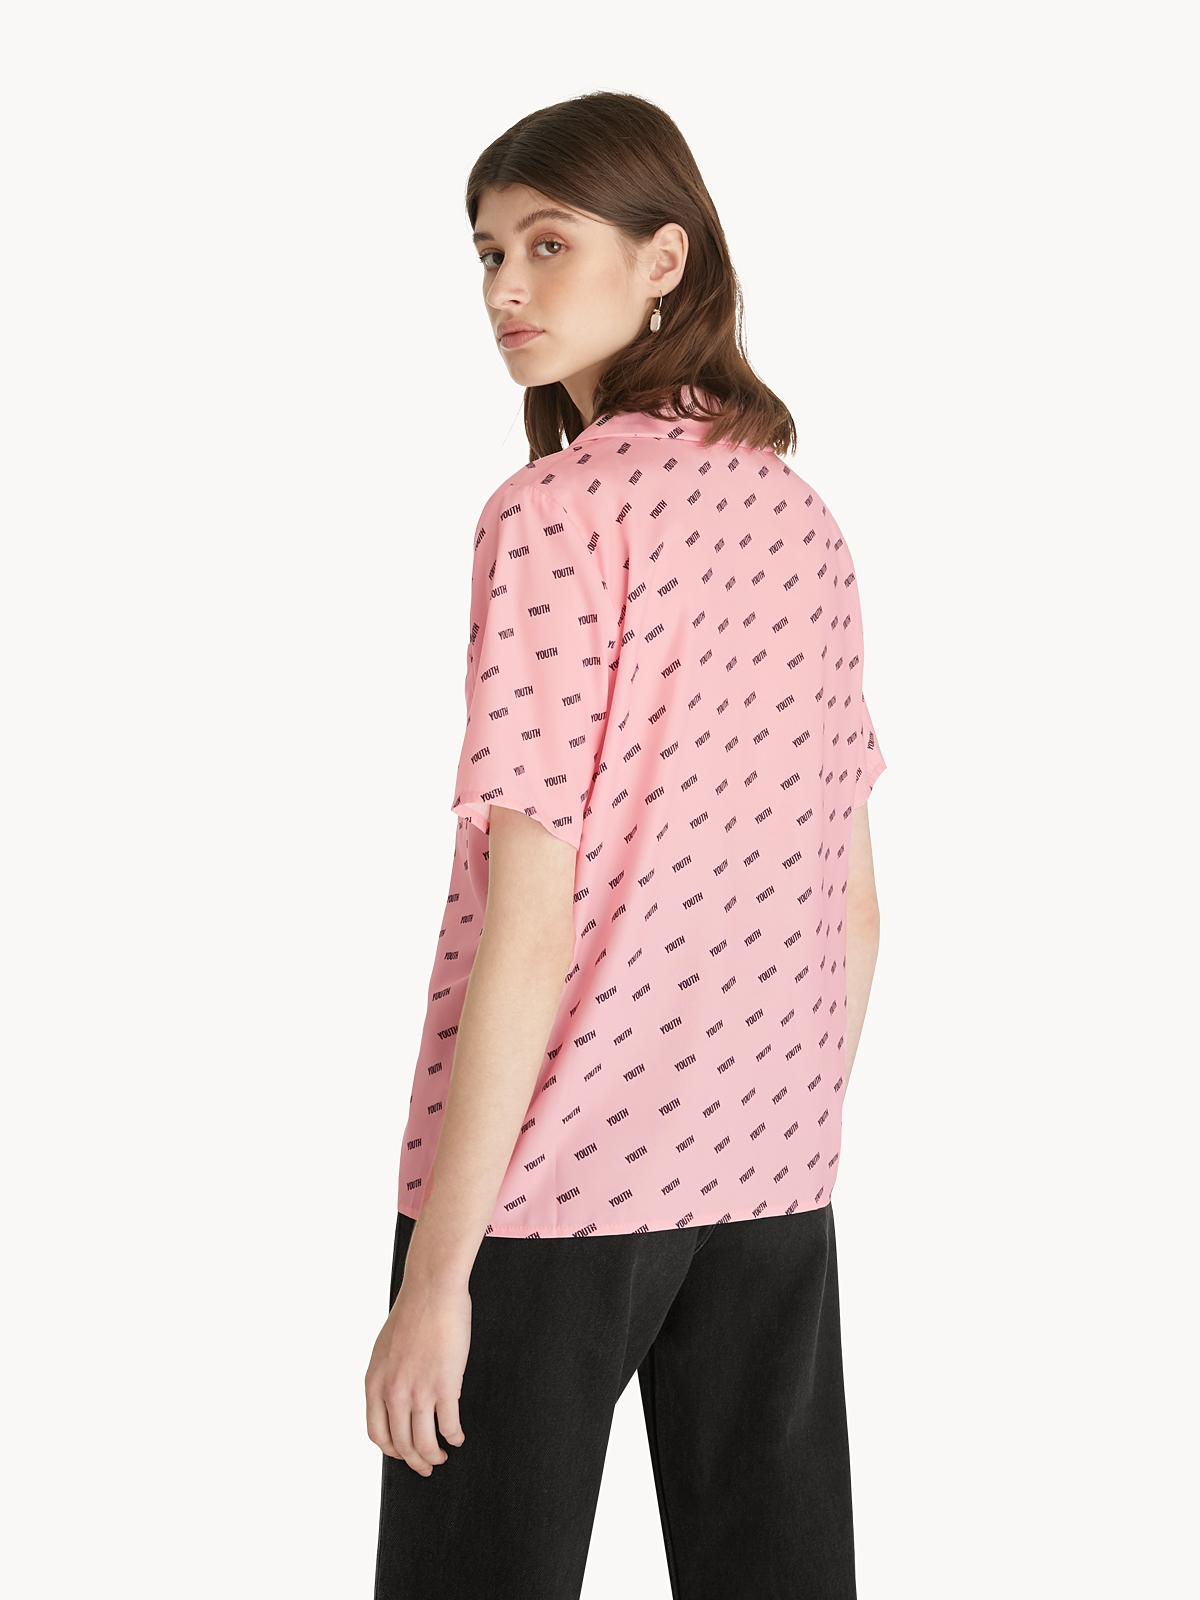 Youth Button Up Shirt Pink